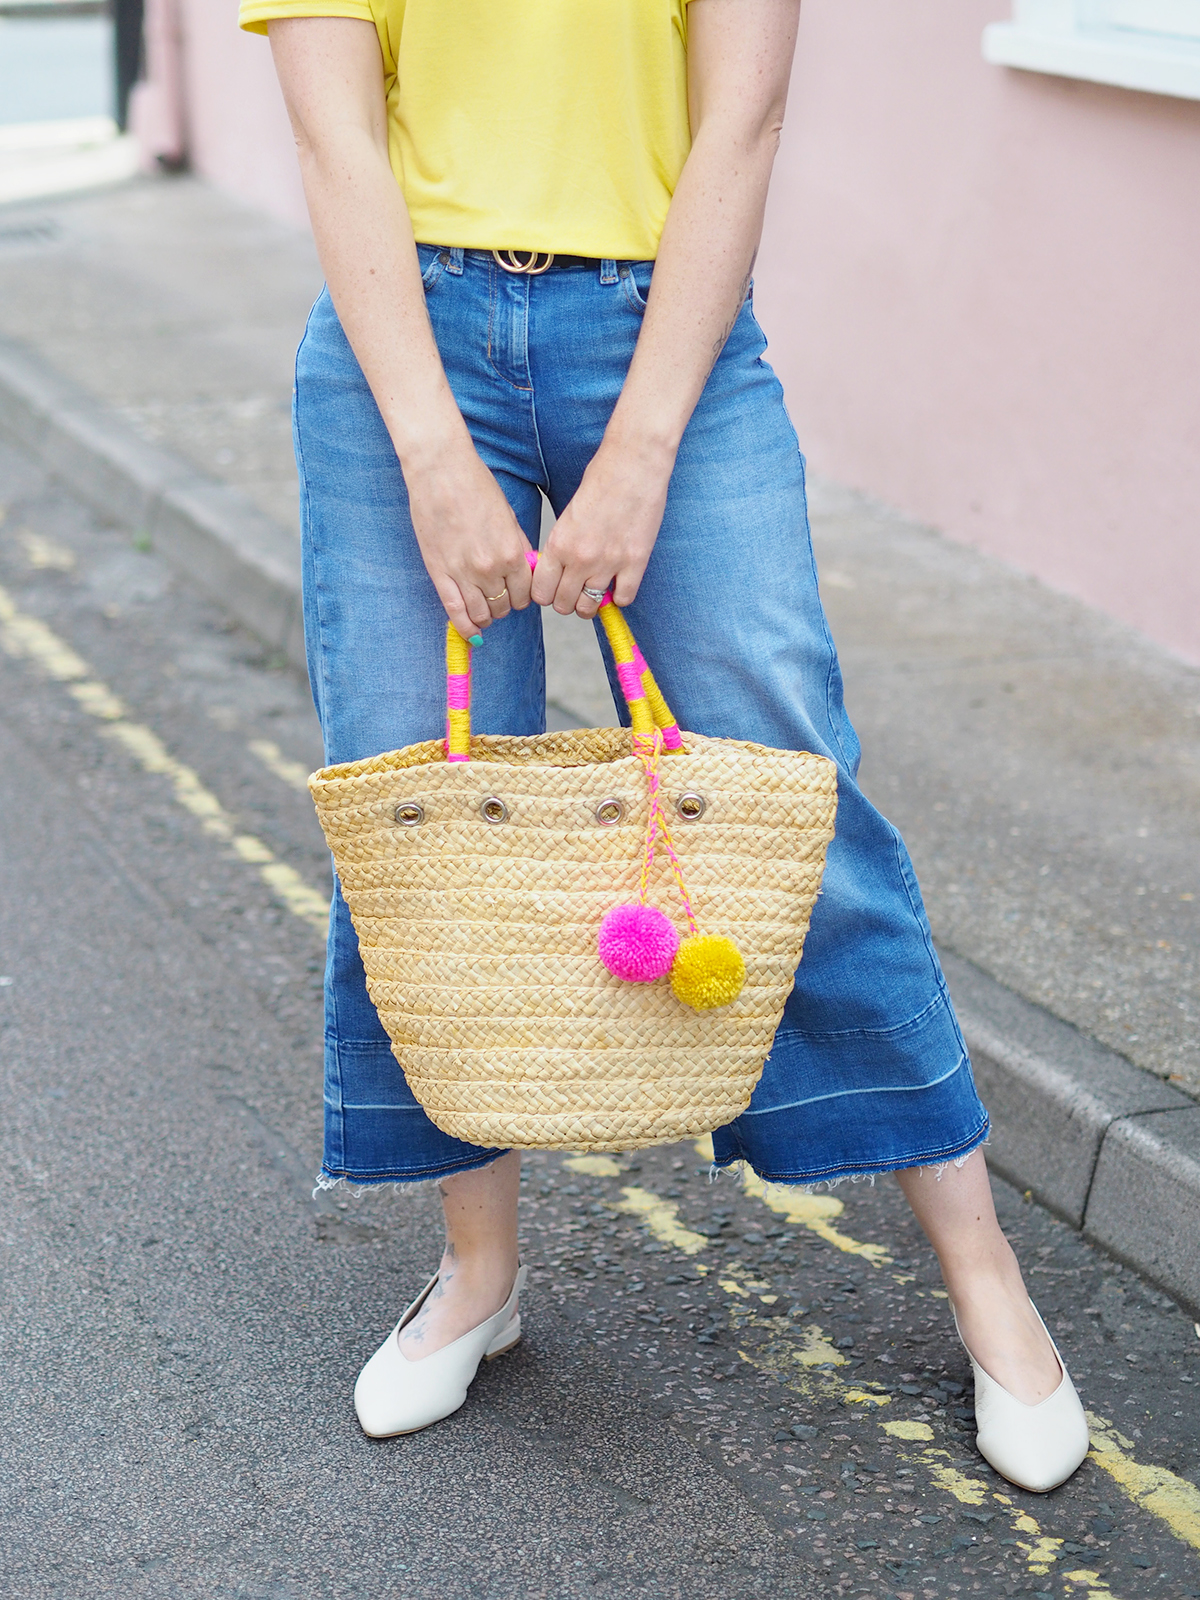 wearing bright colours bright colourful outfit yellow tee straw bag with pom poms